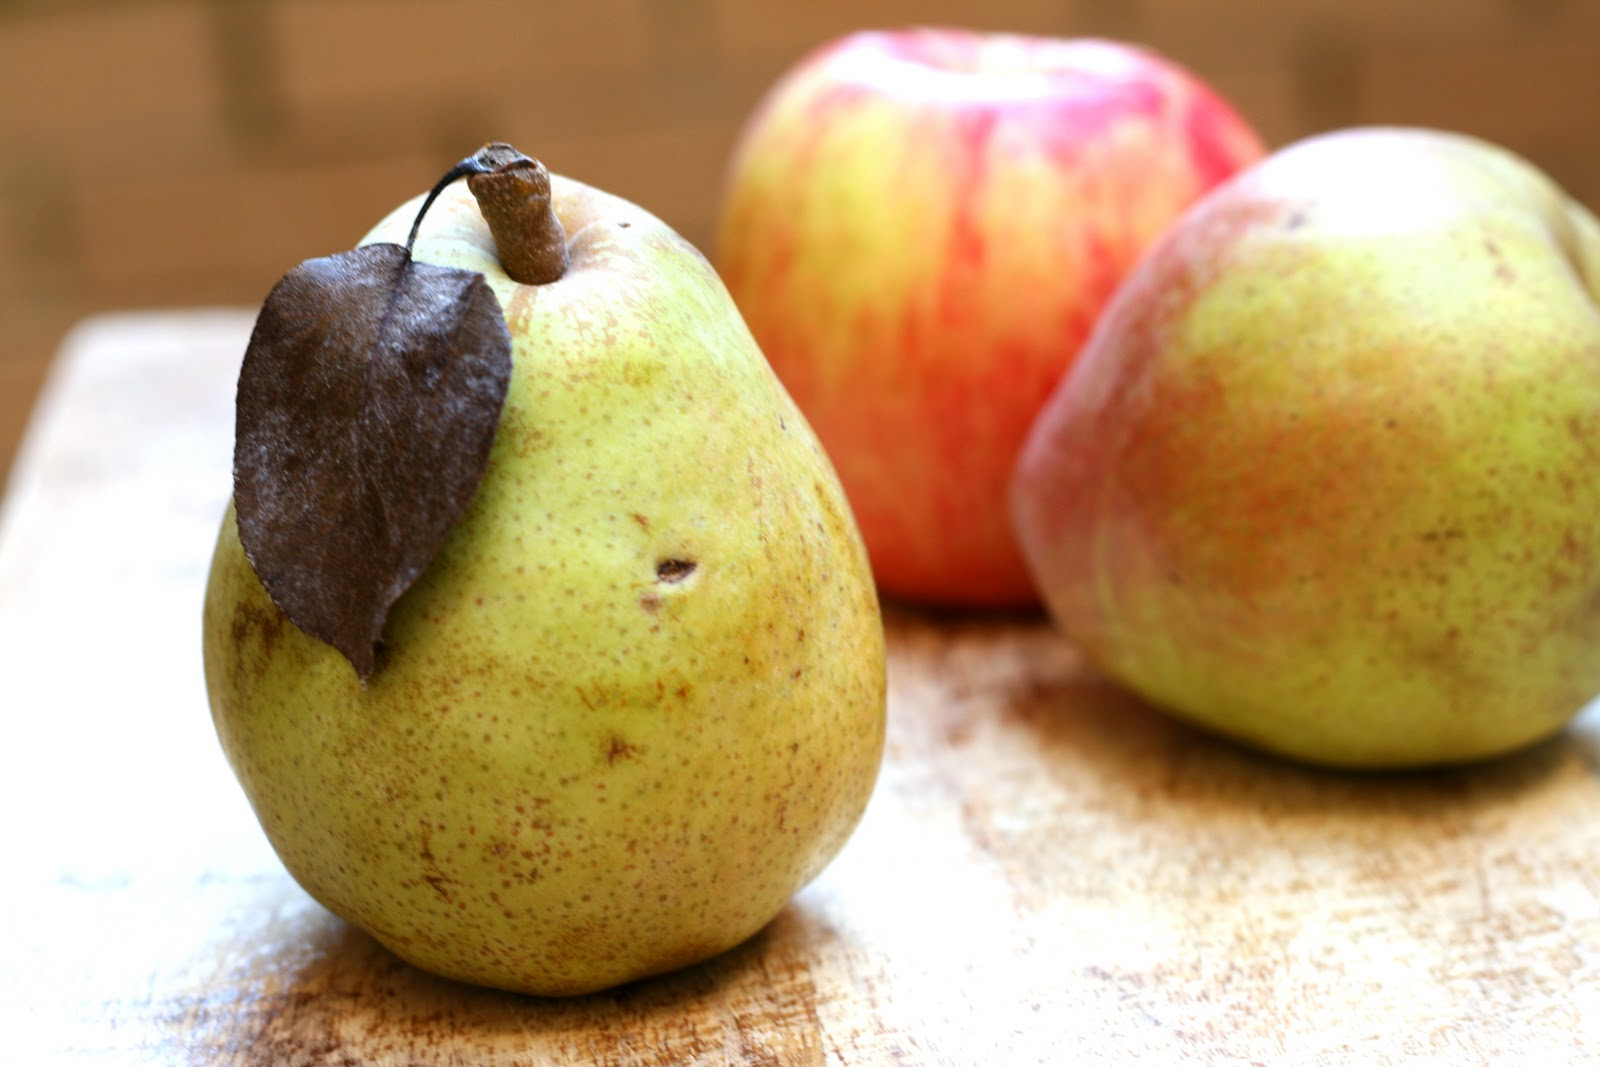 So, clearly, you need pears. And in case you lack basic observation ...